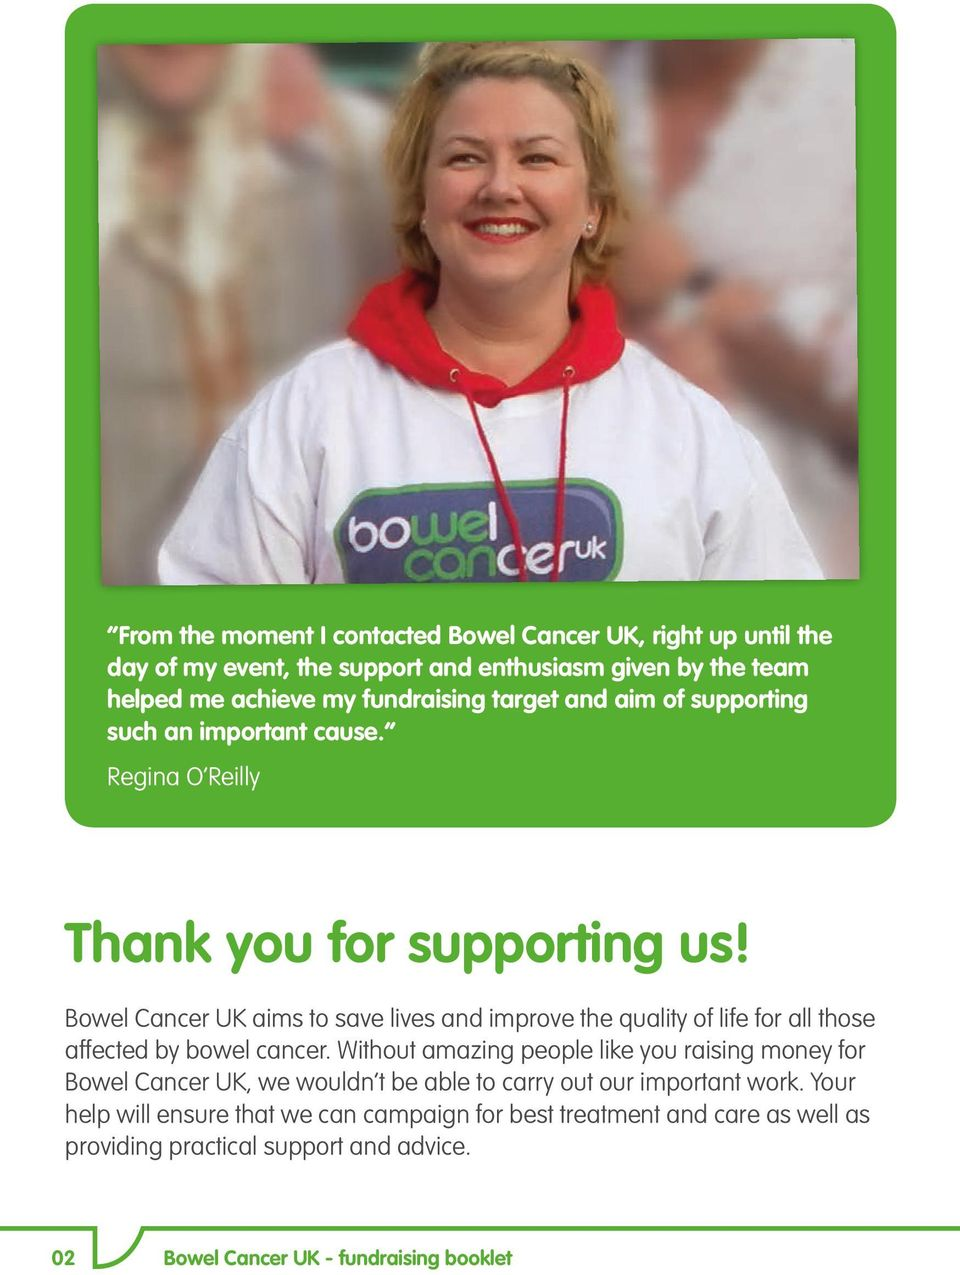 Bowel Cancer UK aims to save lives and improve the quality of life for all those affected by bowel cancer.